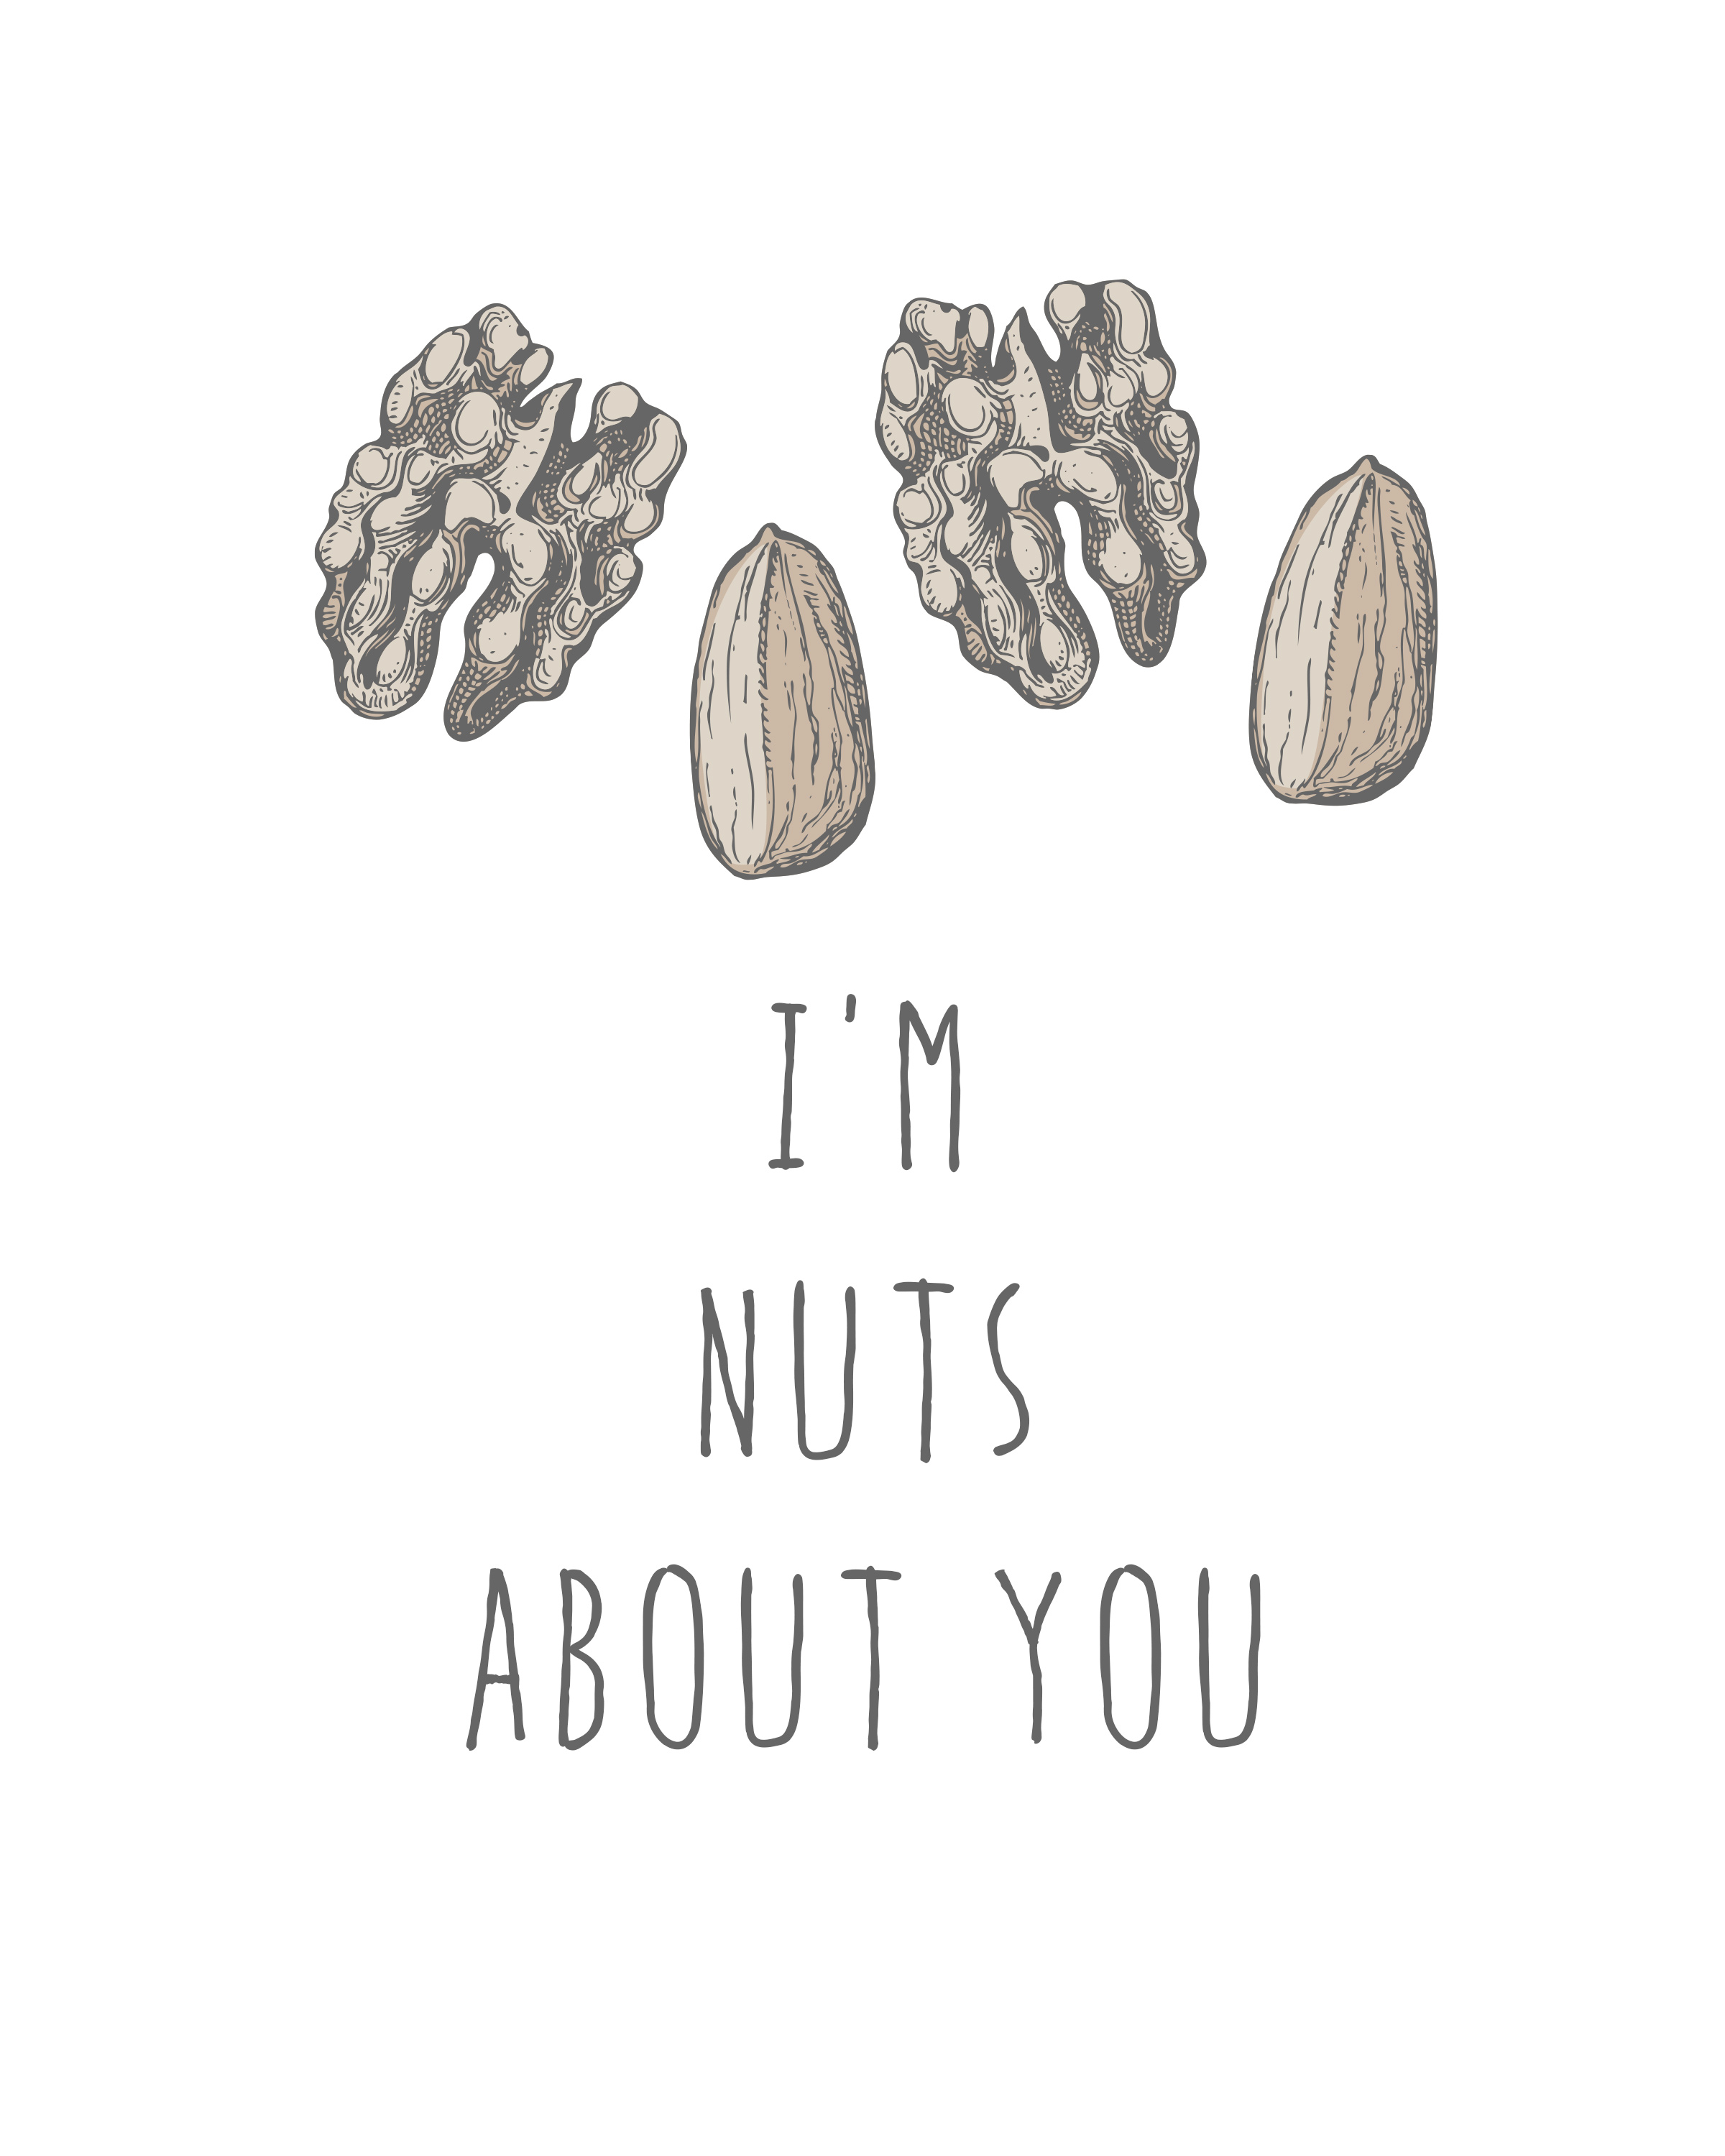 I'm nuts about you // art print